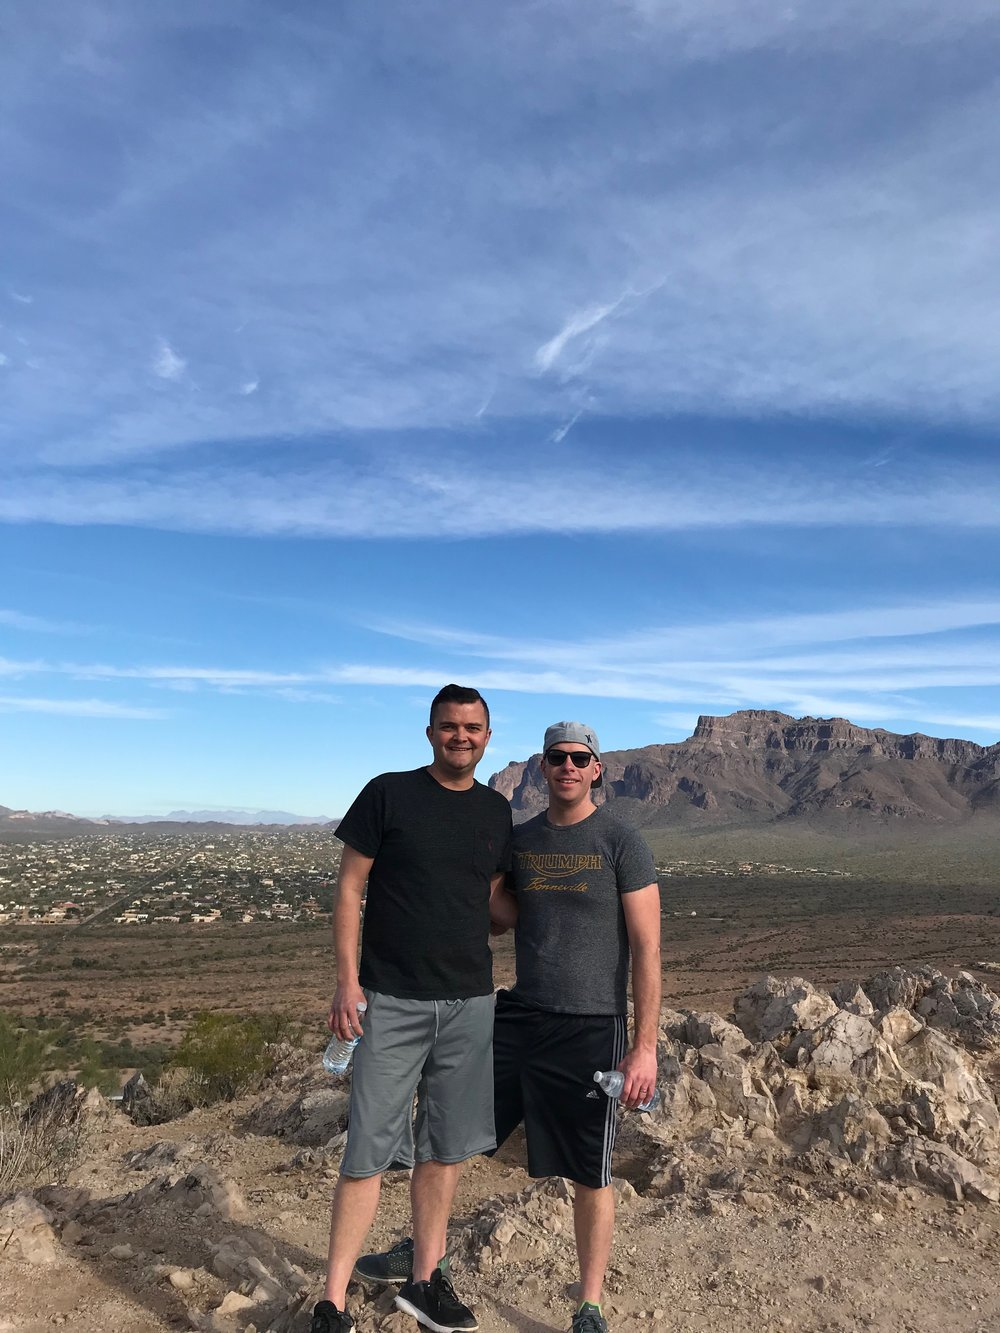 Hiking in Phoenix